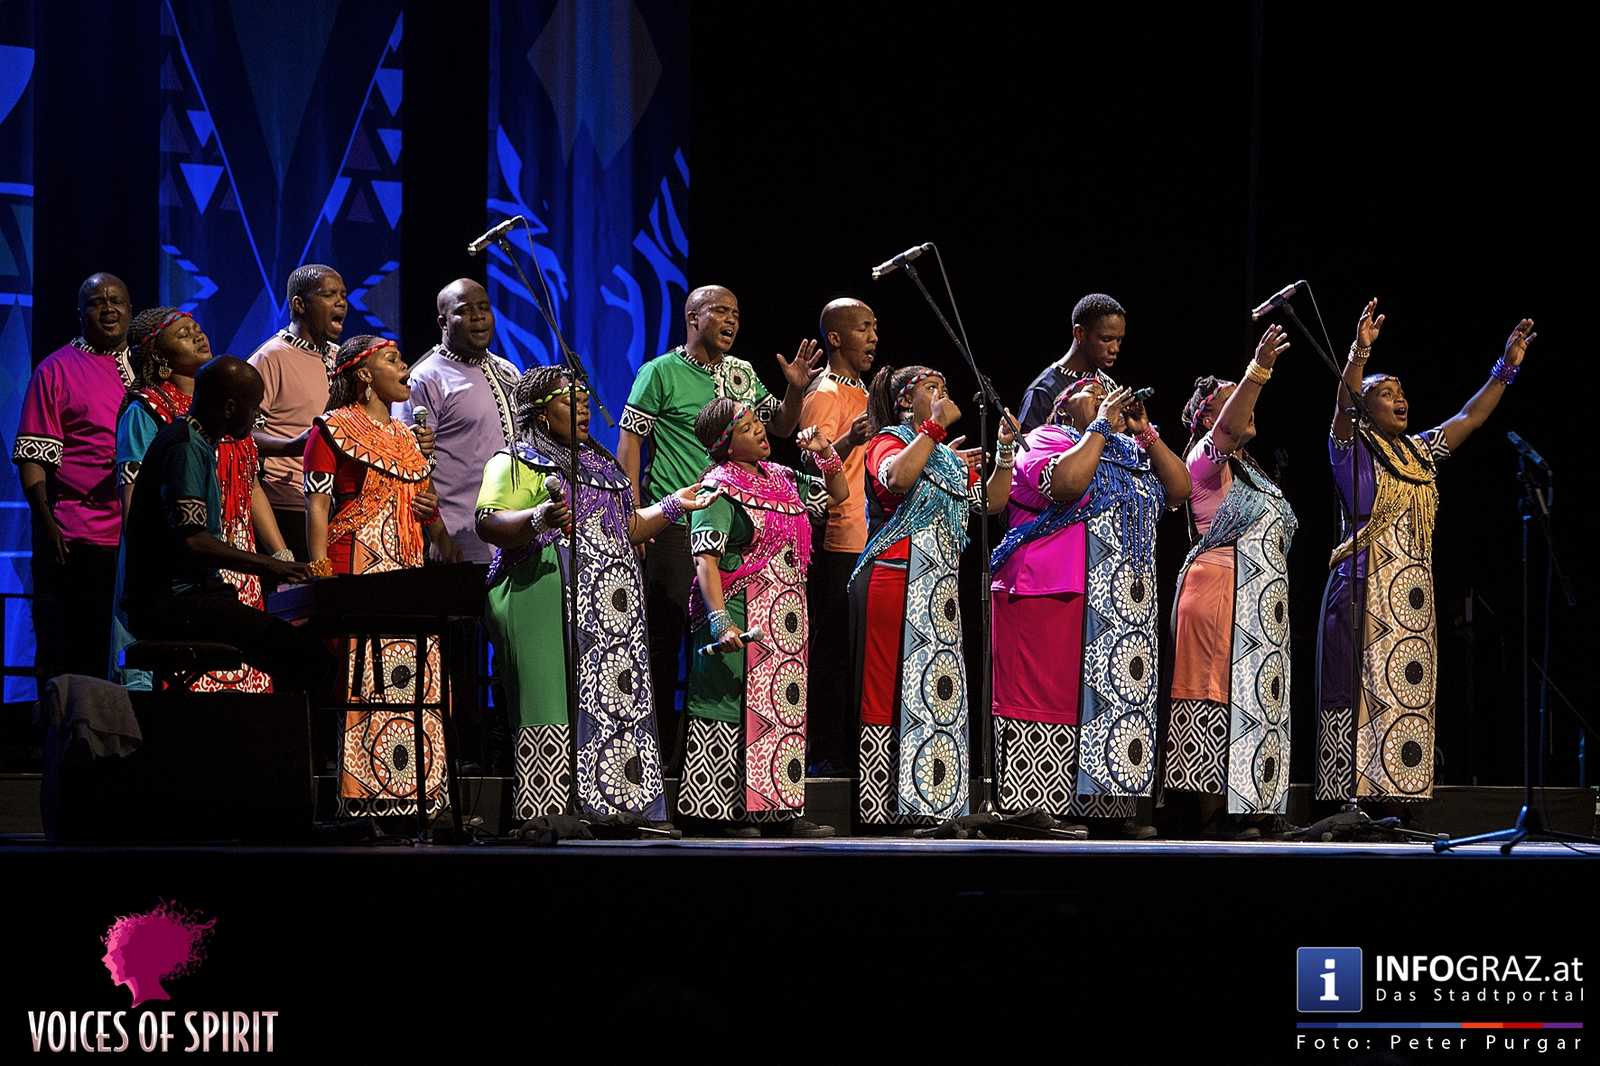 soweto gospel choir internationales chorfestival statdthalle graz voices of spirit eroeffnung festivals 2016 136